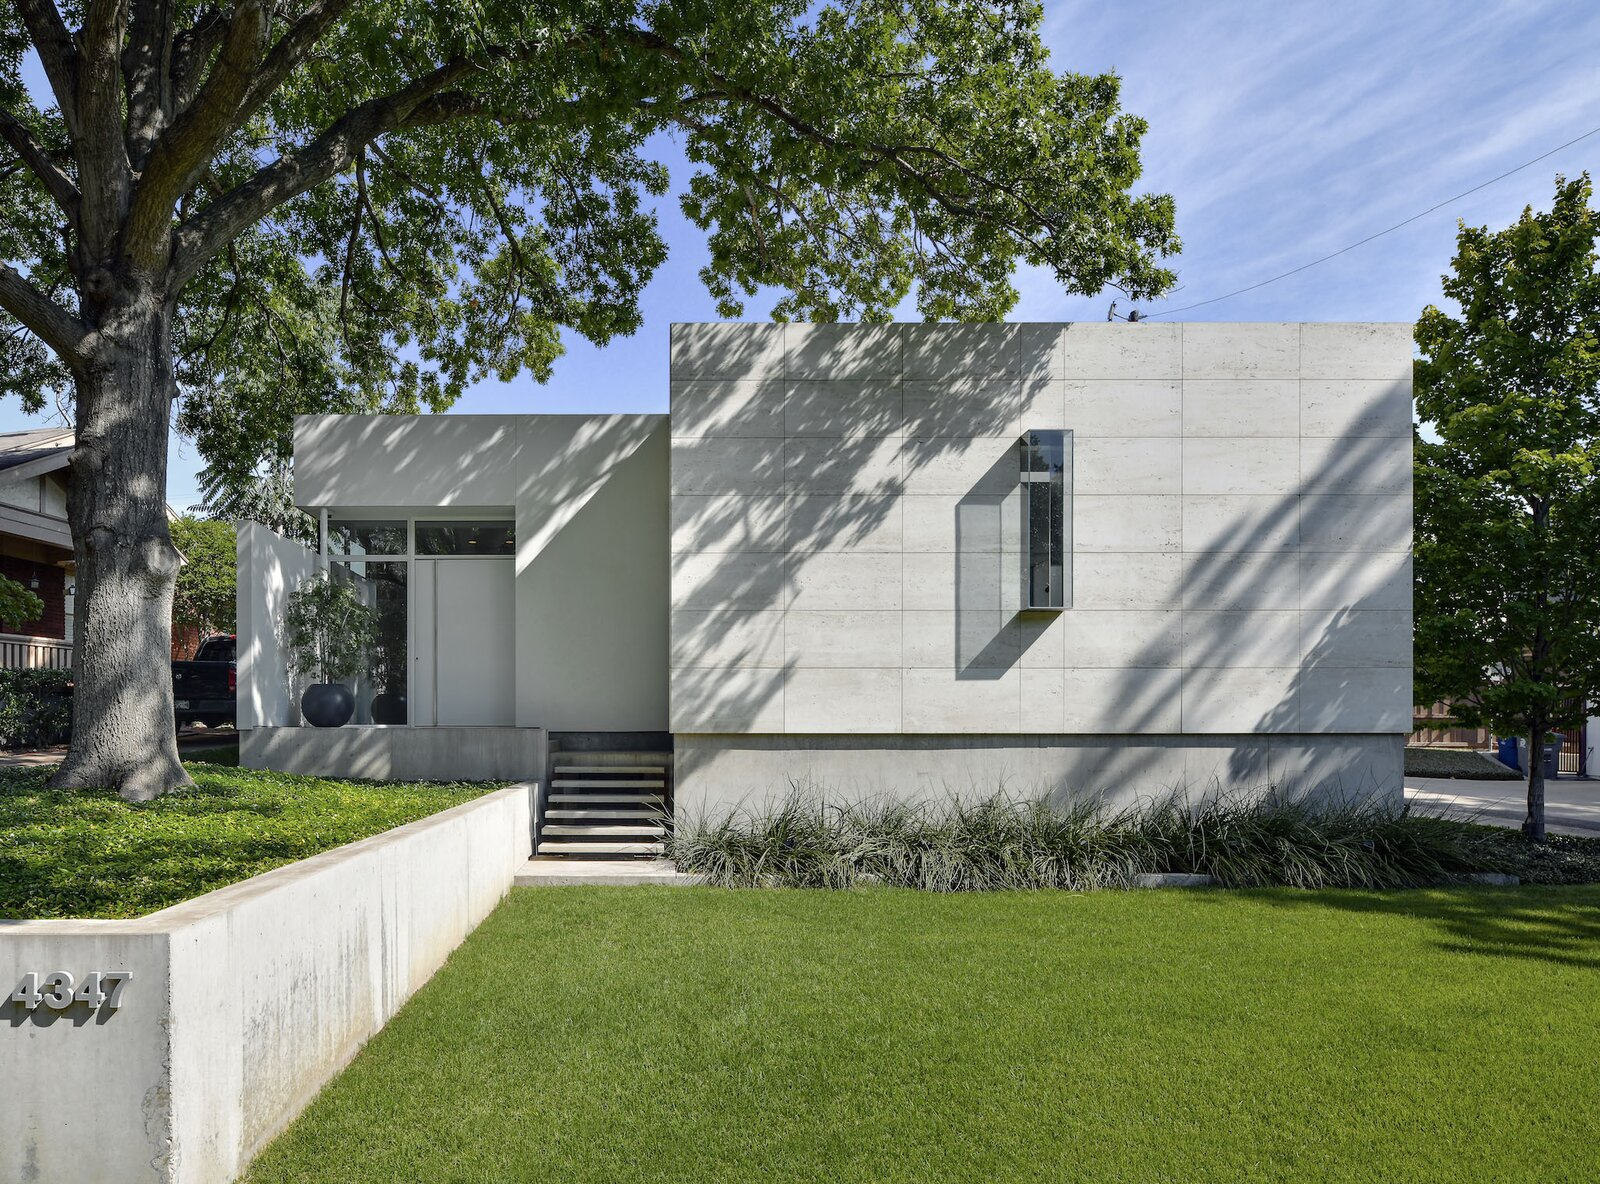 """Exterior Built in 2014, this modernist-style home is sited on an irregularly shaped lot in the Turtle Creek area of Dallas, Texas. The front-most section of the facade is covered in Roman travertine, while the rest of the exterior is finished in <span style=""""font-family: Theinhardt, -apple-system, BlinkMacSystemFont, &quot;Segoe UI&quot;, Roboto, Oxygen-Sans, Ubuntu, Cantarell, &quot;Helvetica Neue&quot;, sans-serif;"""">hard-troweled stucco.</span>  Photo 1 of 11 in A Chic Urban Retreat by Modernist Architect Lionel Morrison Asks $2.5M in Dallas"""